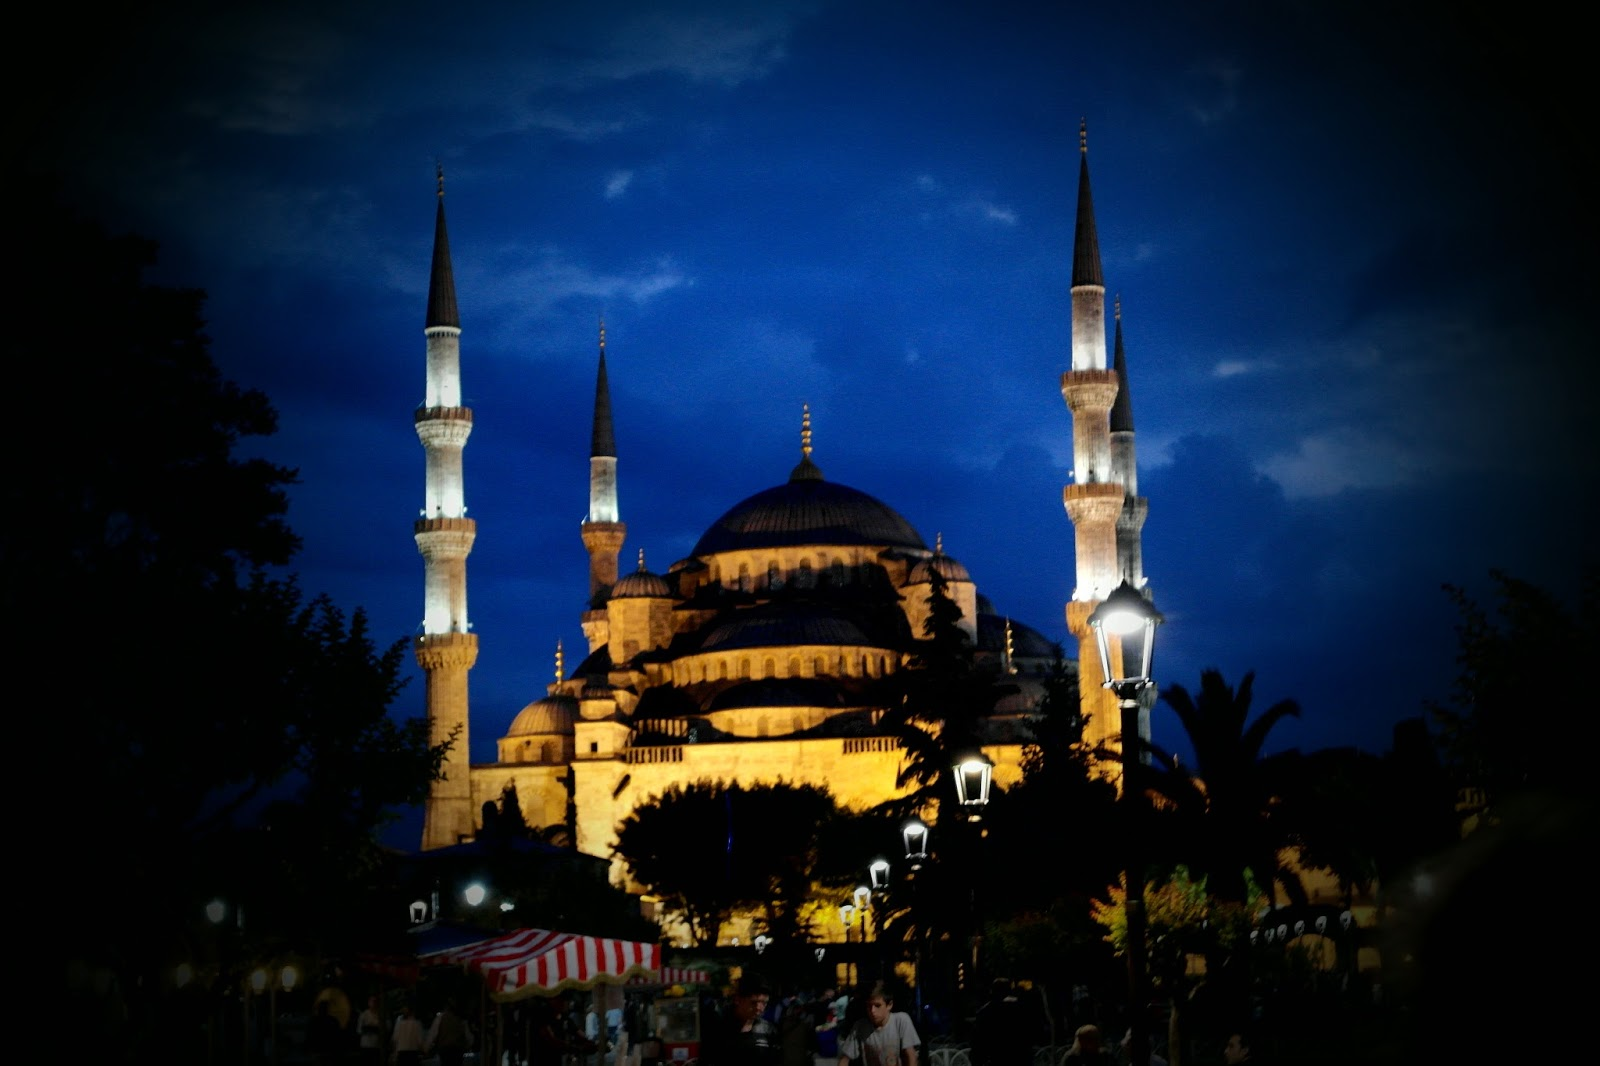 Blue Mosque lit up at night